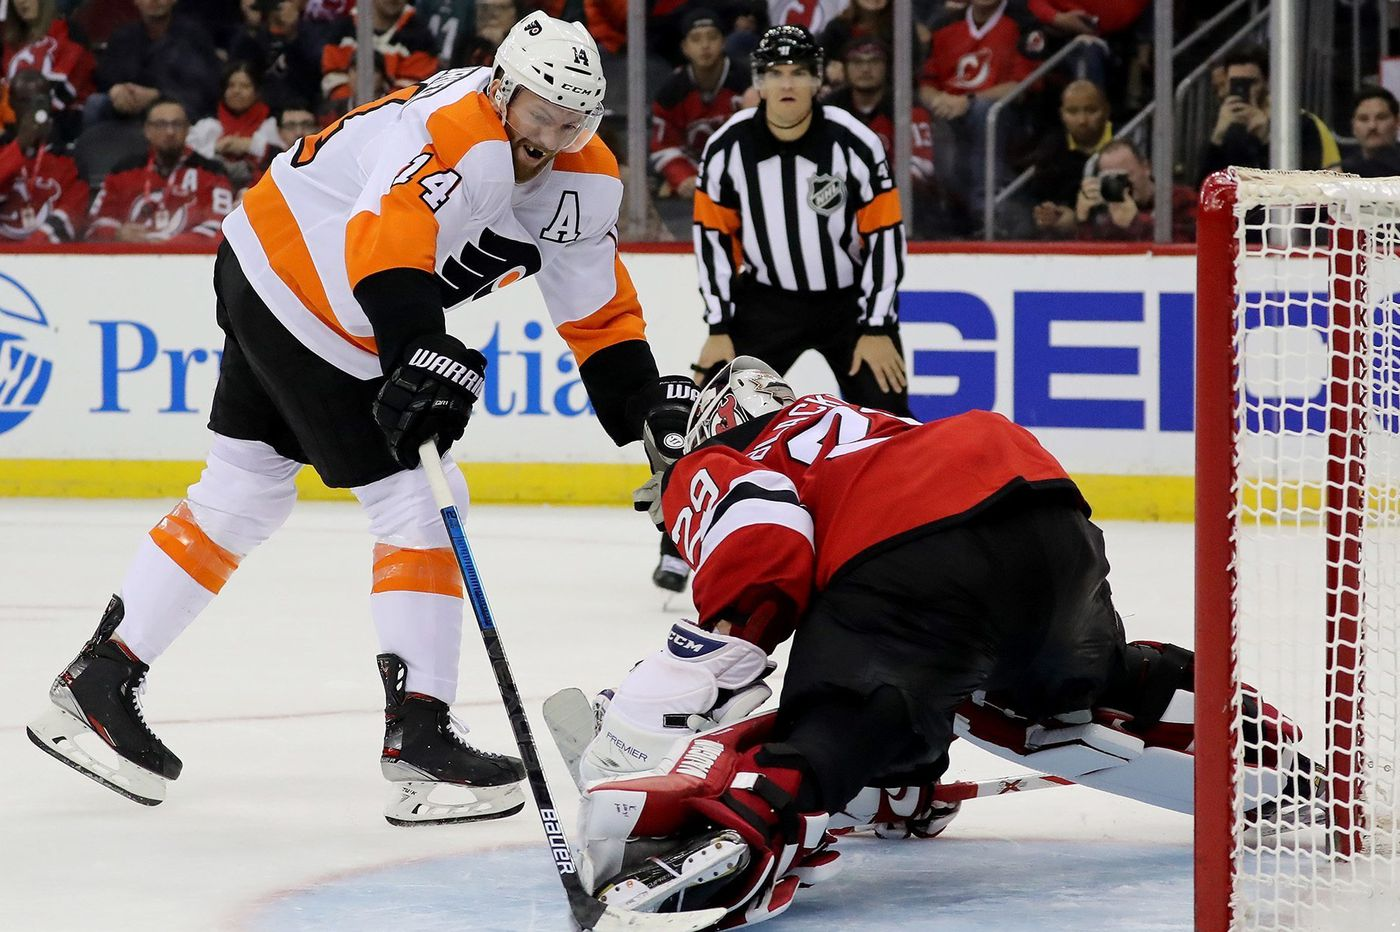 Sean Couturier, Carter Hart shine in shootout as Flyers edge Devils, 4-3